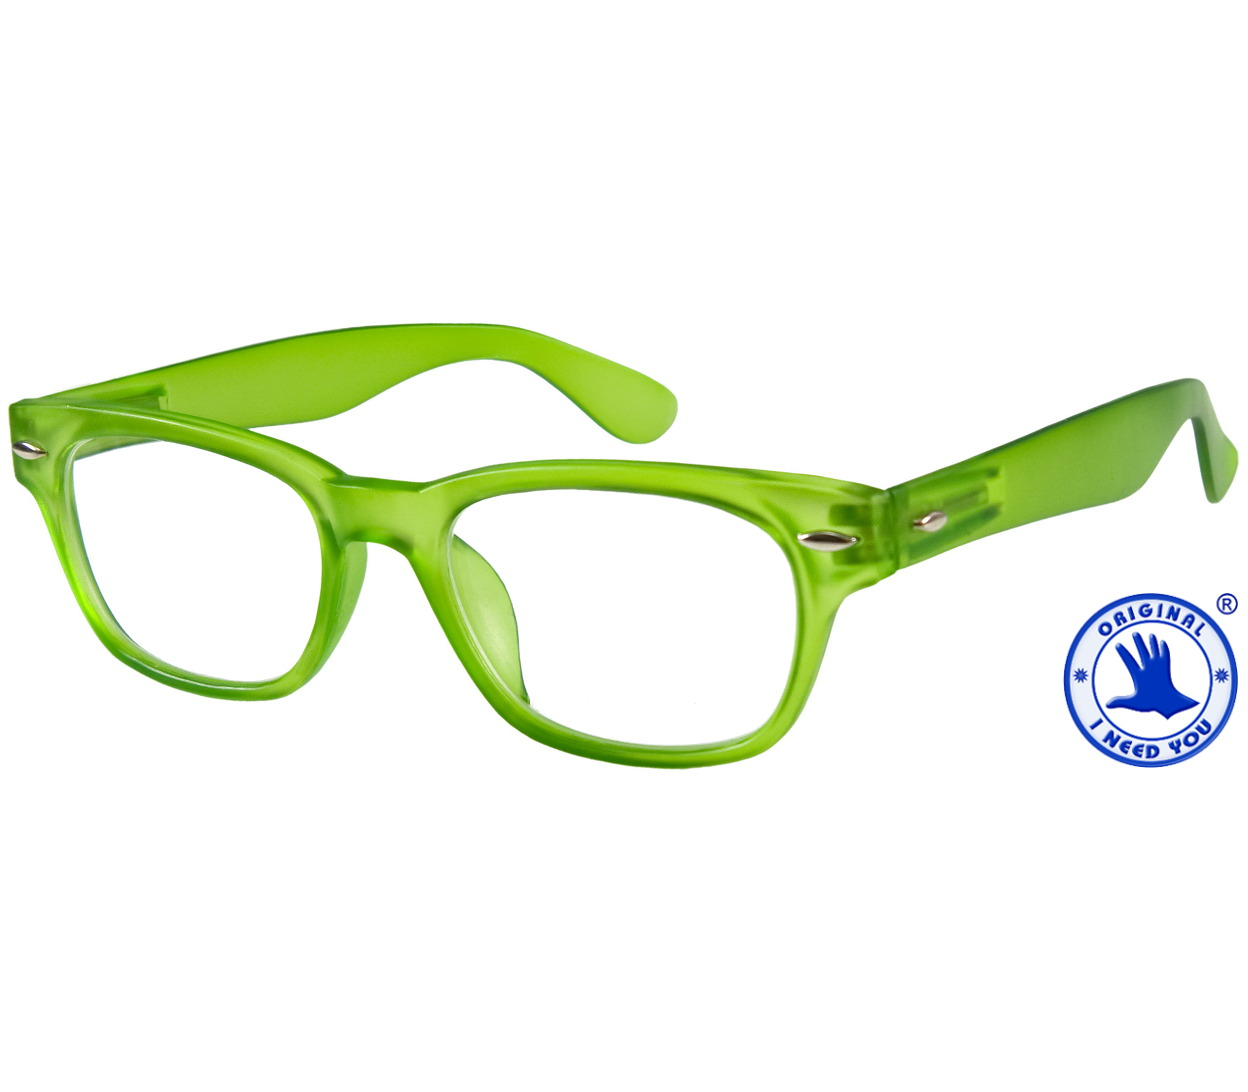 Main Image (Angle) - Woody (Green) Retro Reading Glasses